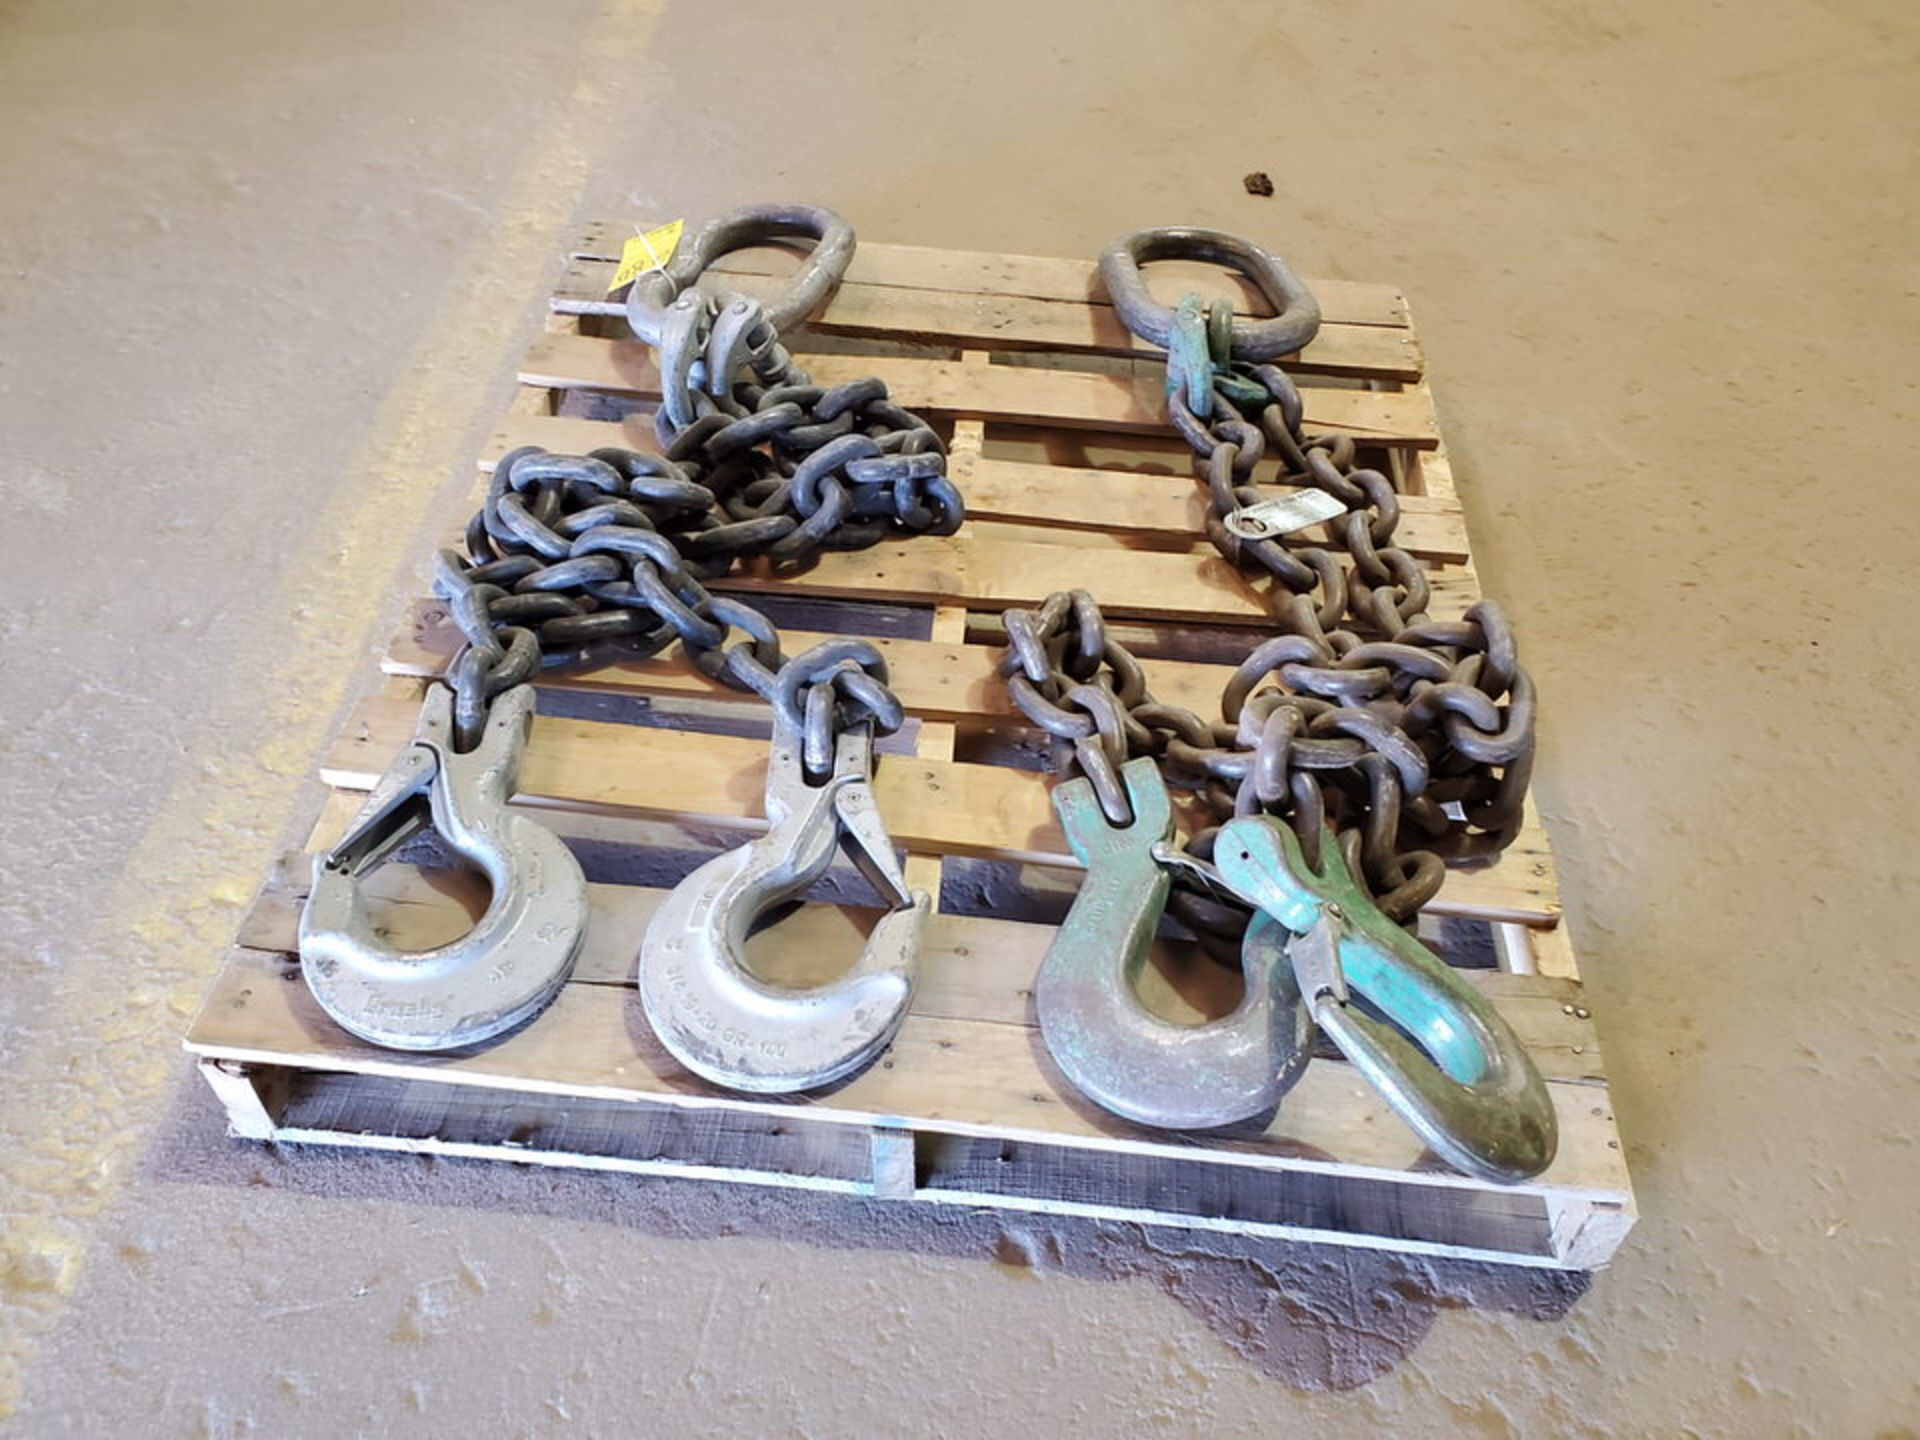 Hvy Duty Lifting Chains - Image 3 of 7